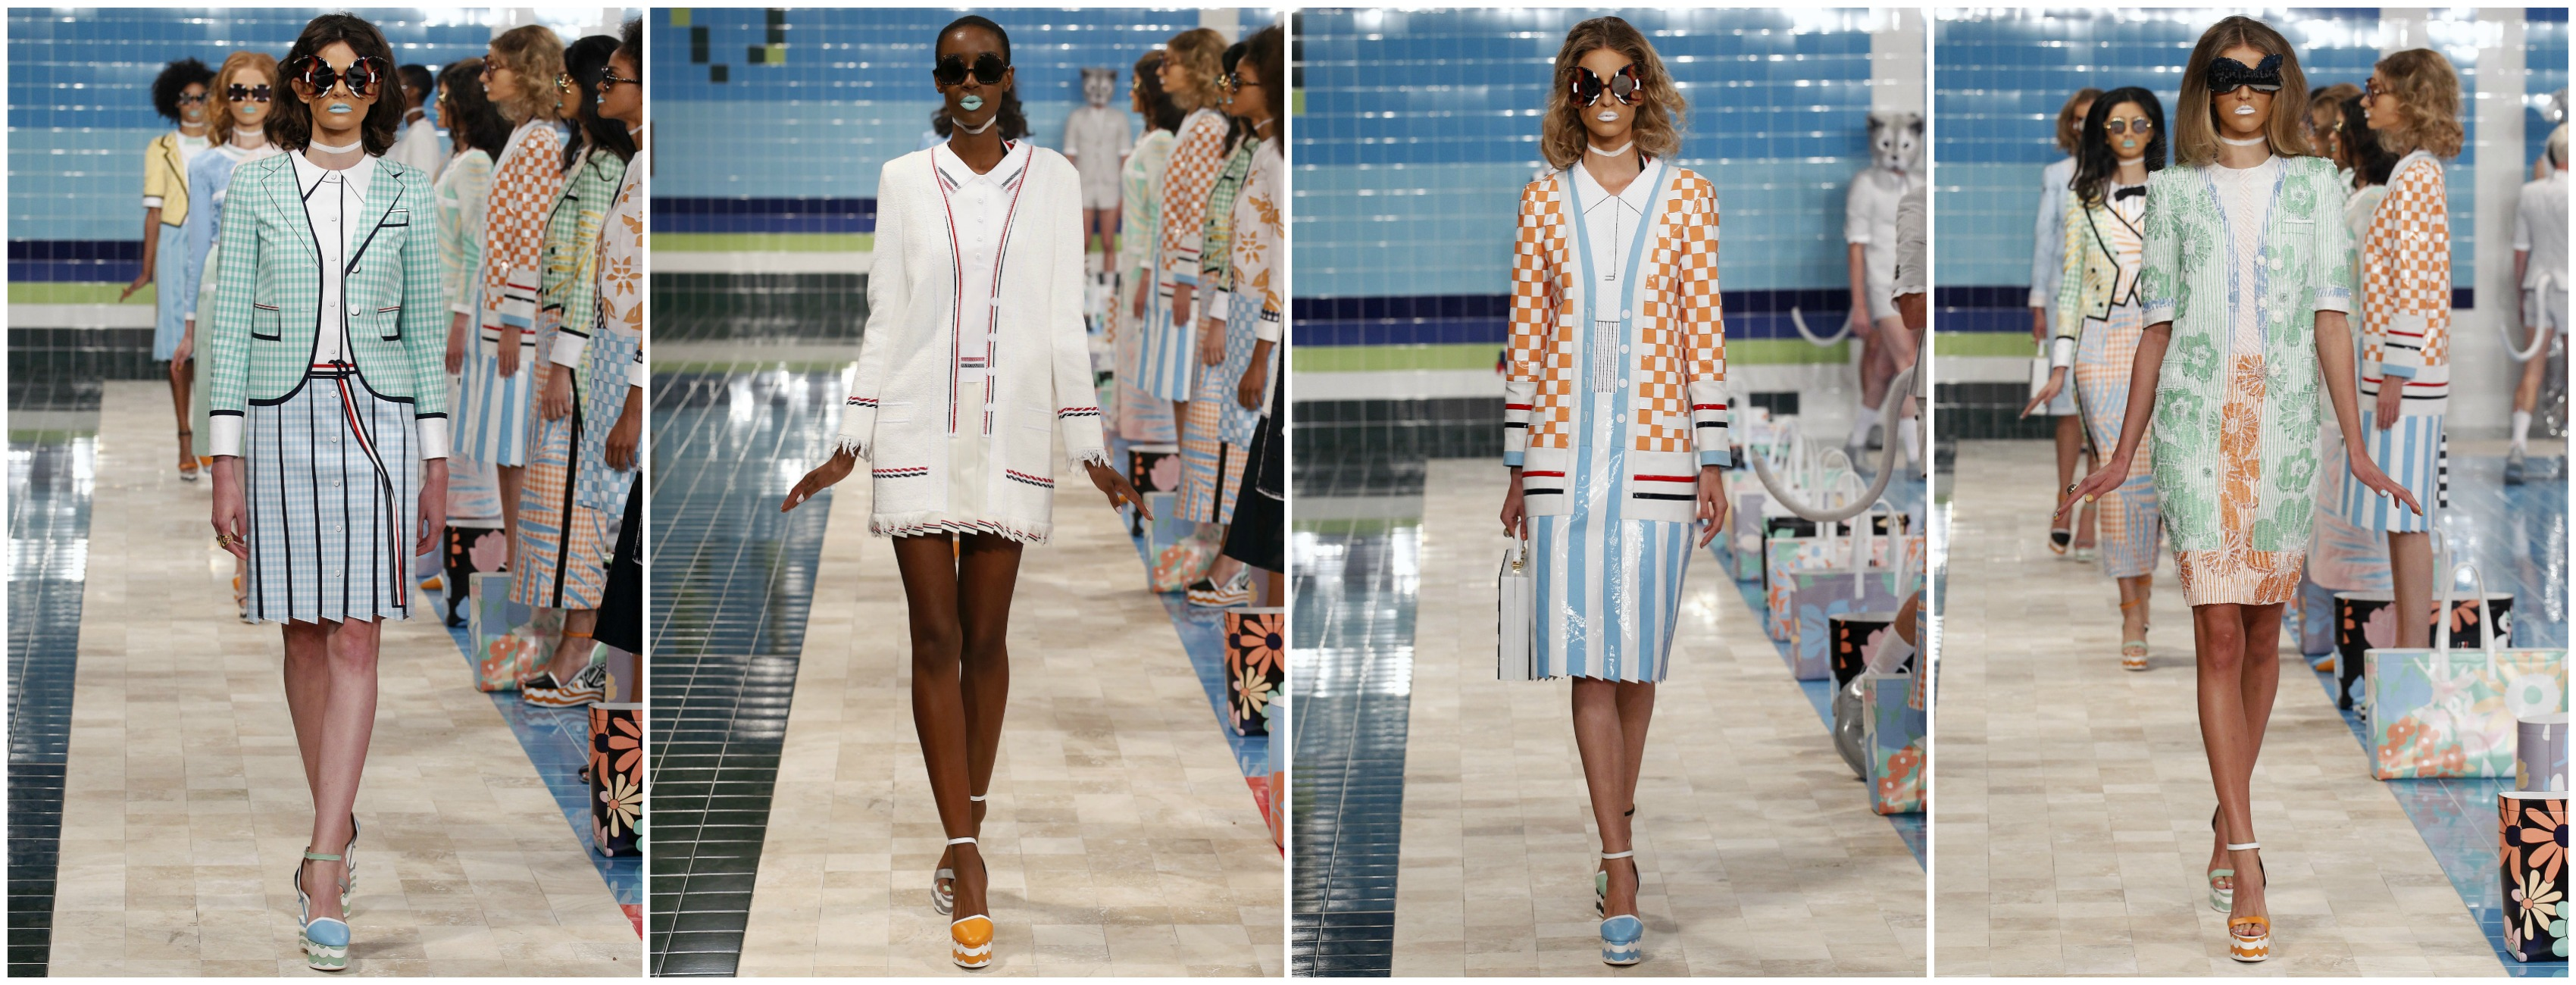 new york fashion week styling id couture them browne 2016